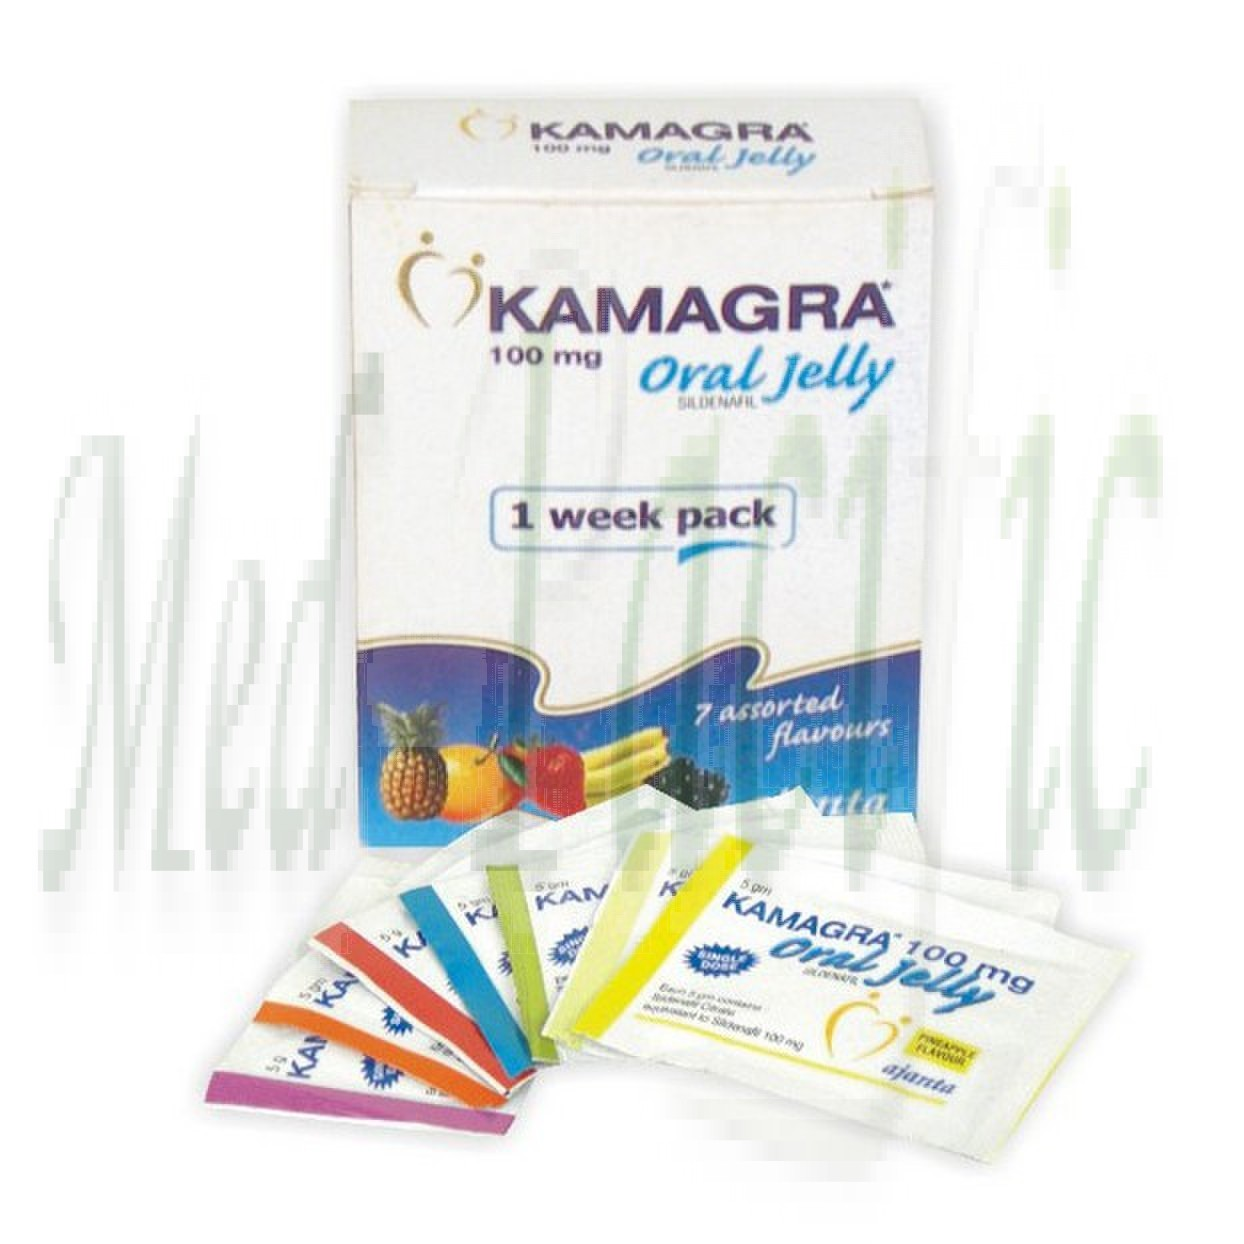 kamagra 100mg oral jelly info